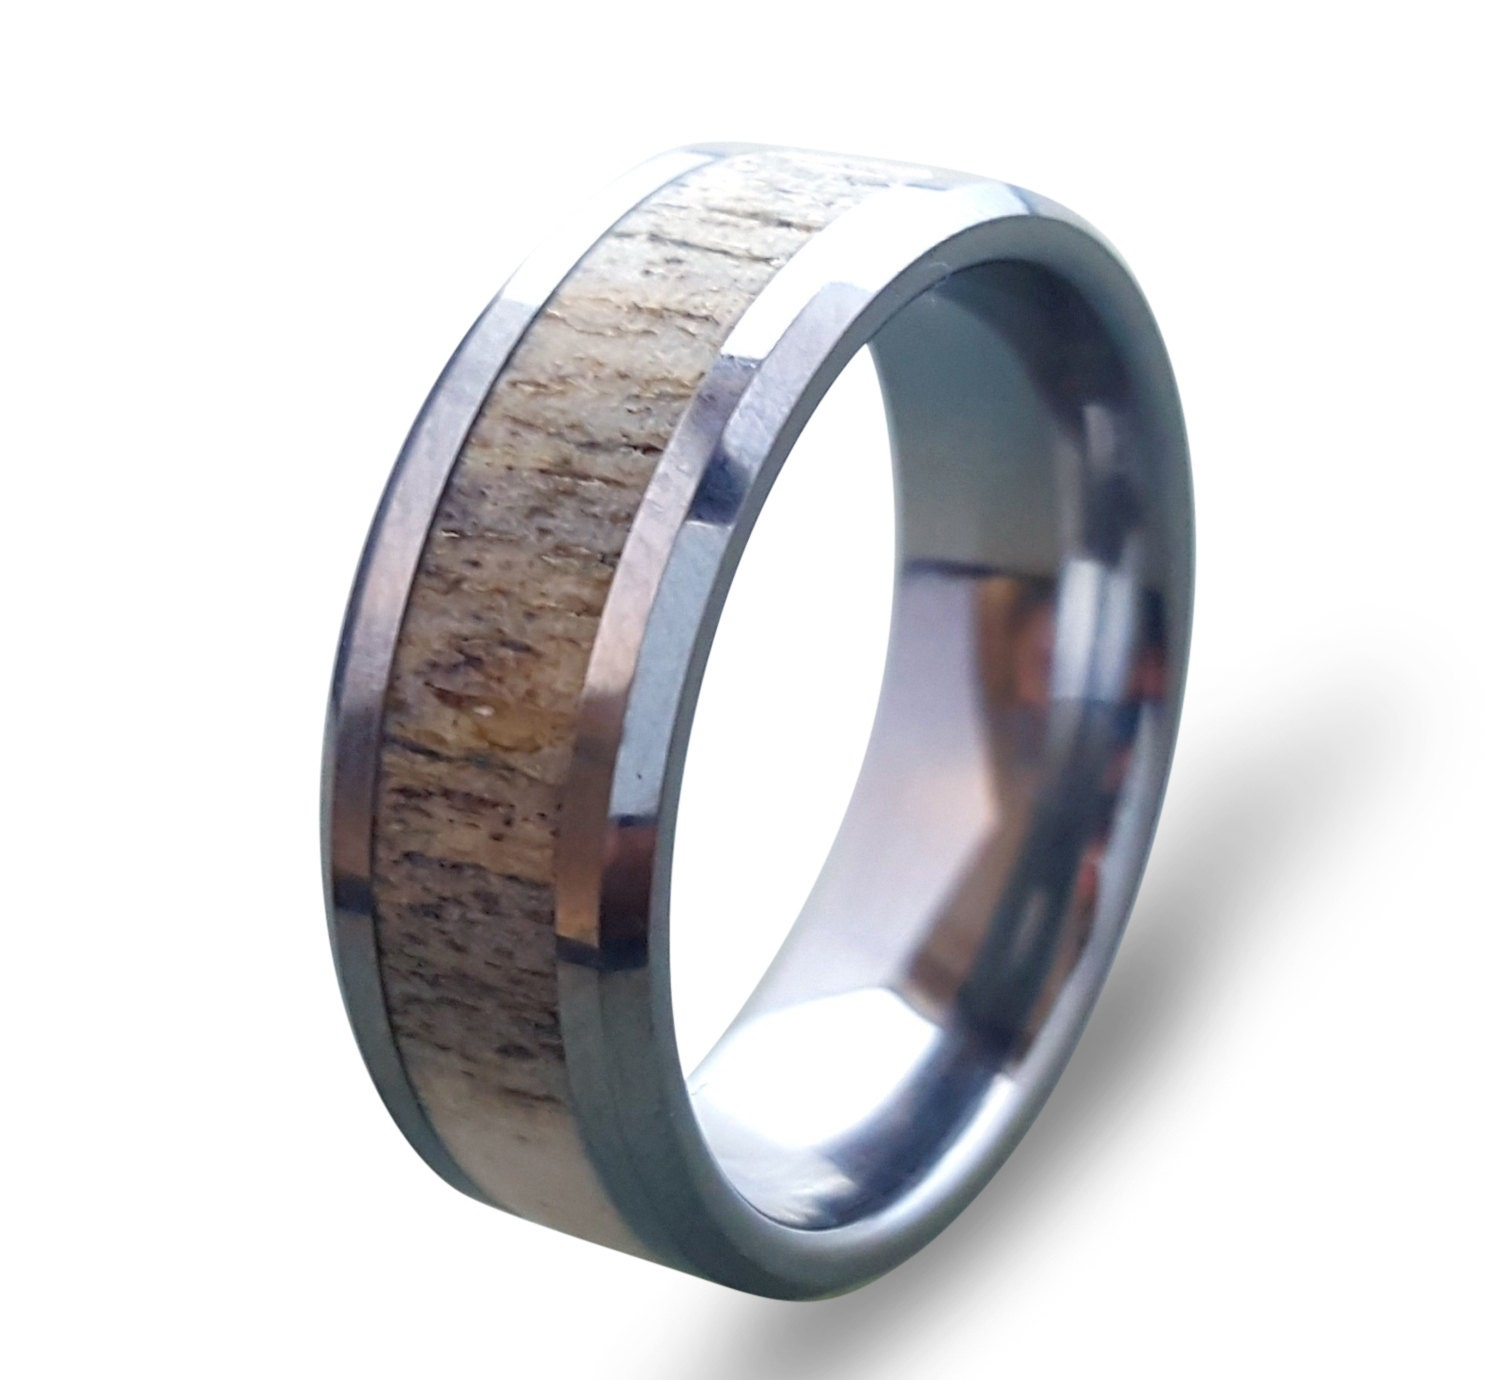 inlay wood products naturally ring and mens s guitar koa string shed rings elk engagement men wedding band antler